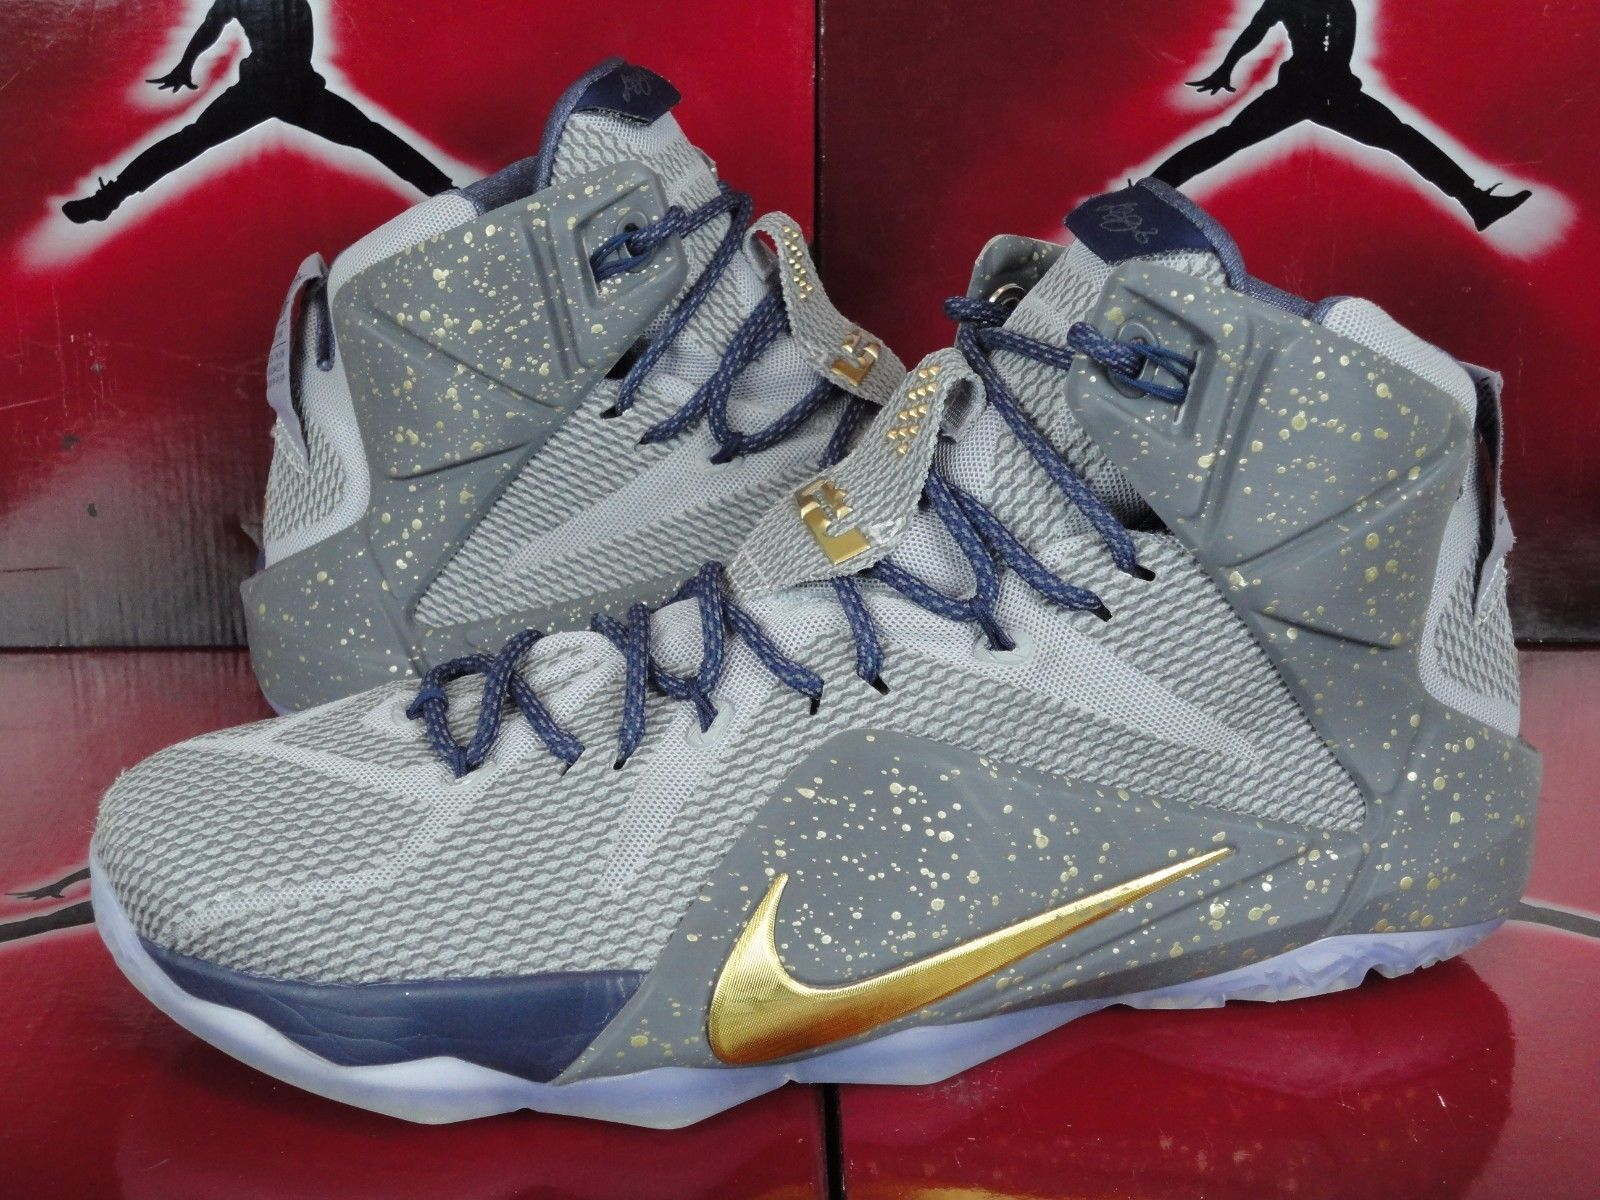 san francisco 82501 1f929 ... store nike lebron 12 xii nikeid id sz 12 gray navy blue gold multi  color custom